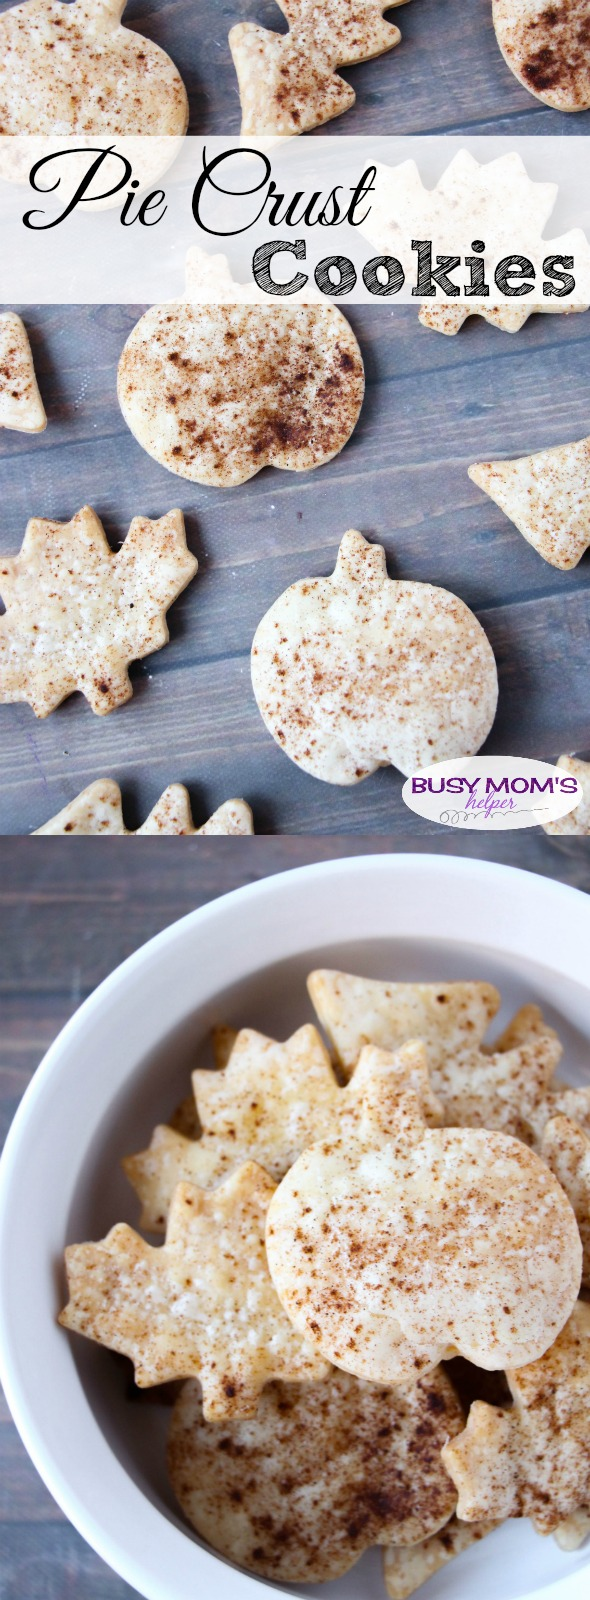 Pie Crust Cookies / a Perfect Holiday Dessert or Snack / Great for Leftover Pie Crust!